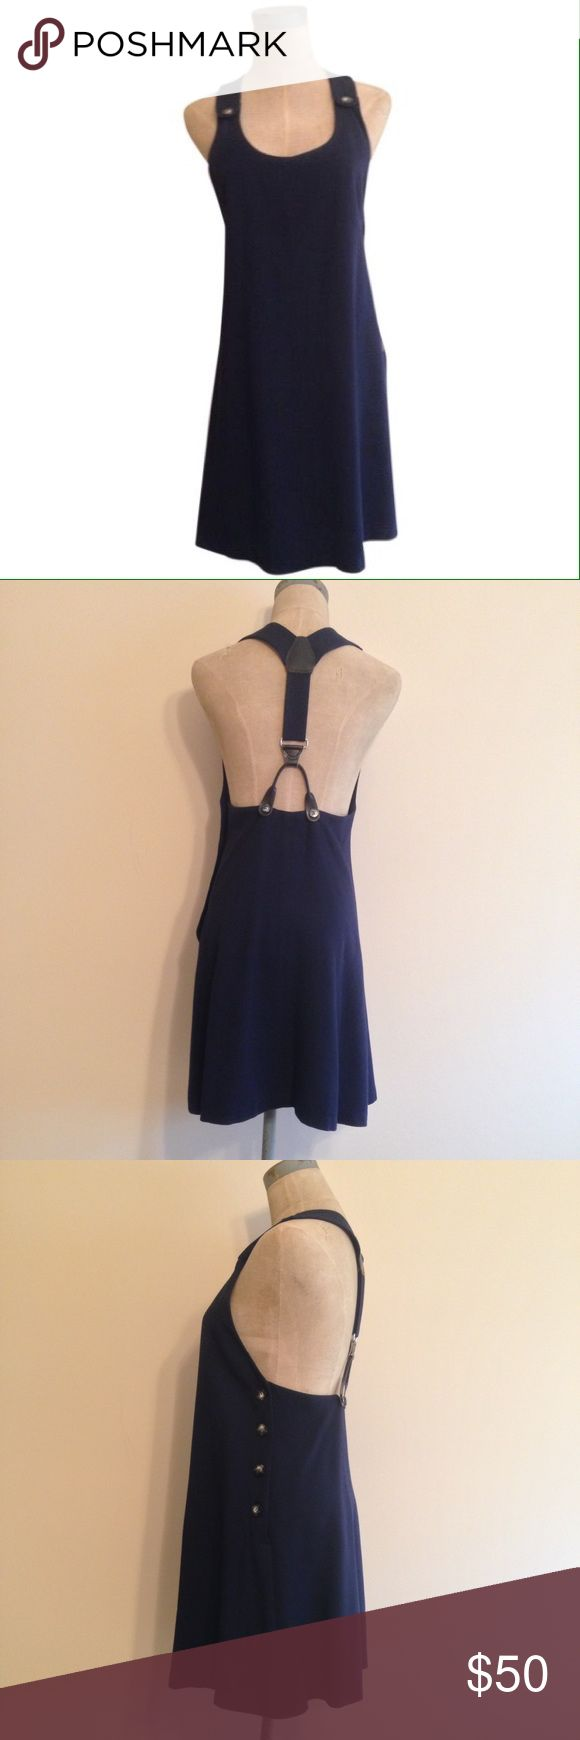 Vintage '90s [Ann Taylor] Navy Jumper, Size 2, EUC Vintage '90s [Ann Taylor] Navy Blue Jumper, Size 2, EUC  * Suspender straps with leather detailing * Side button * 65% Rayon * 35% Wool * Dry clean only  Trades Modeling ✅Please ask questions prior to purchasing. ✅Same day shipping if purchased by 2 pm EST Mon. - Fri. Ann Taylor Dresses